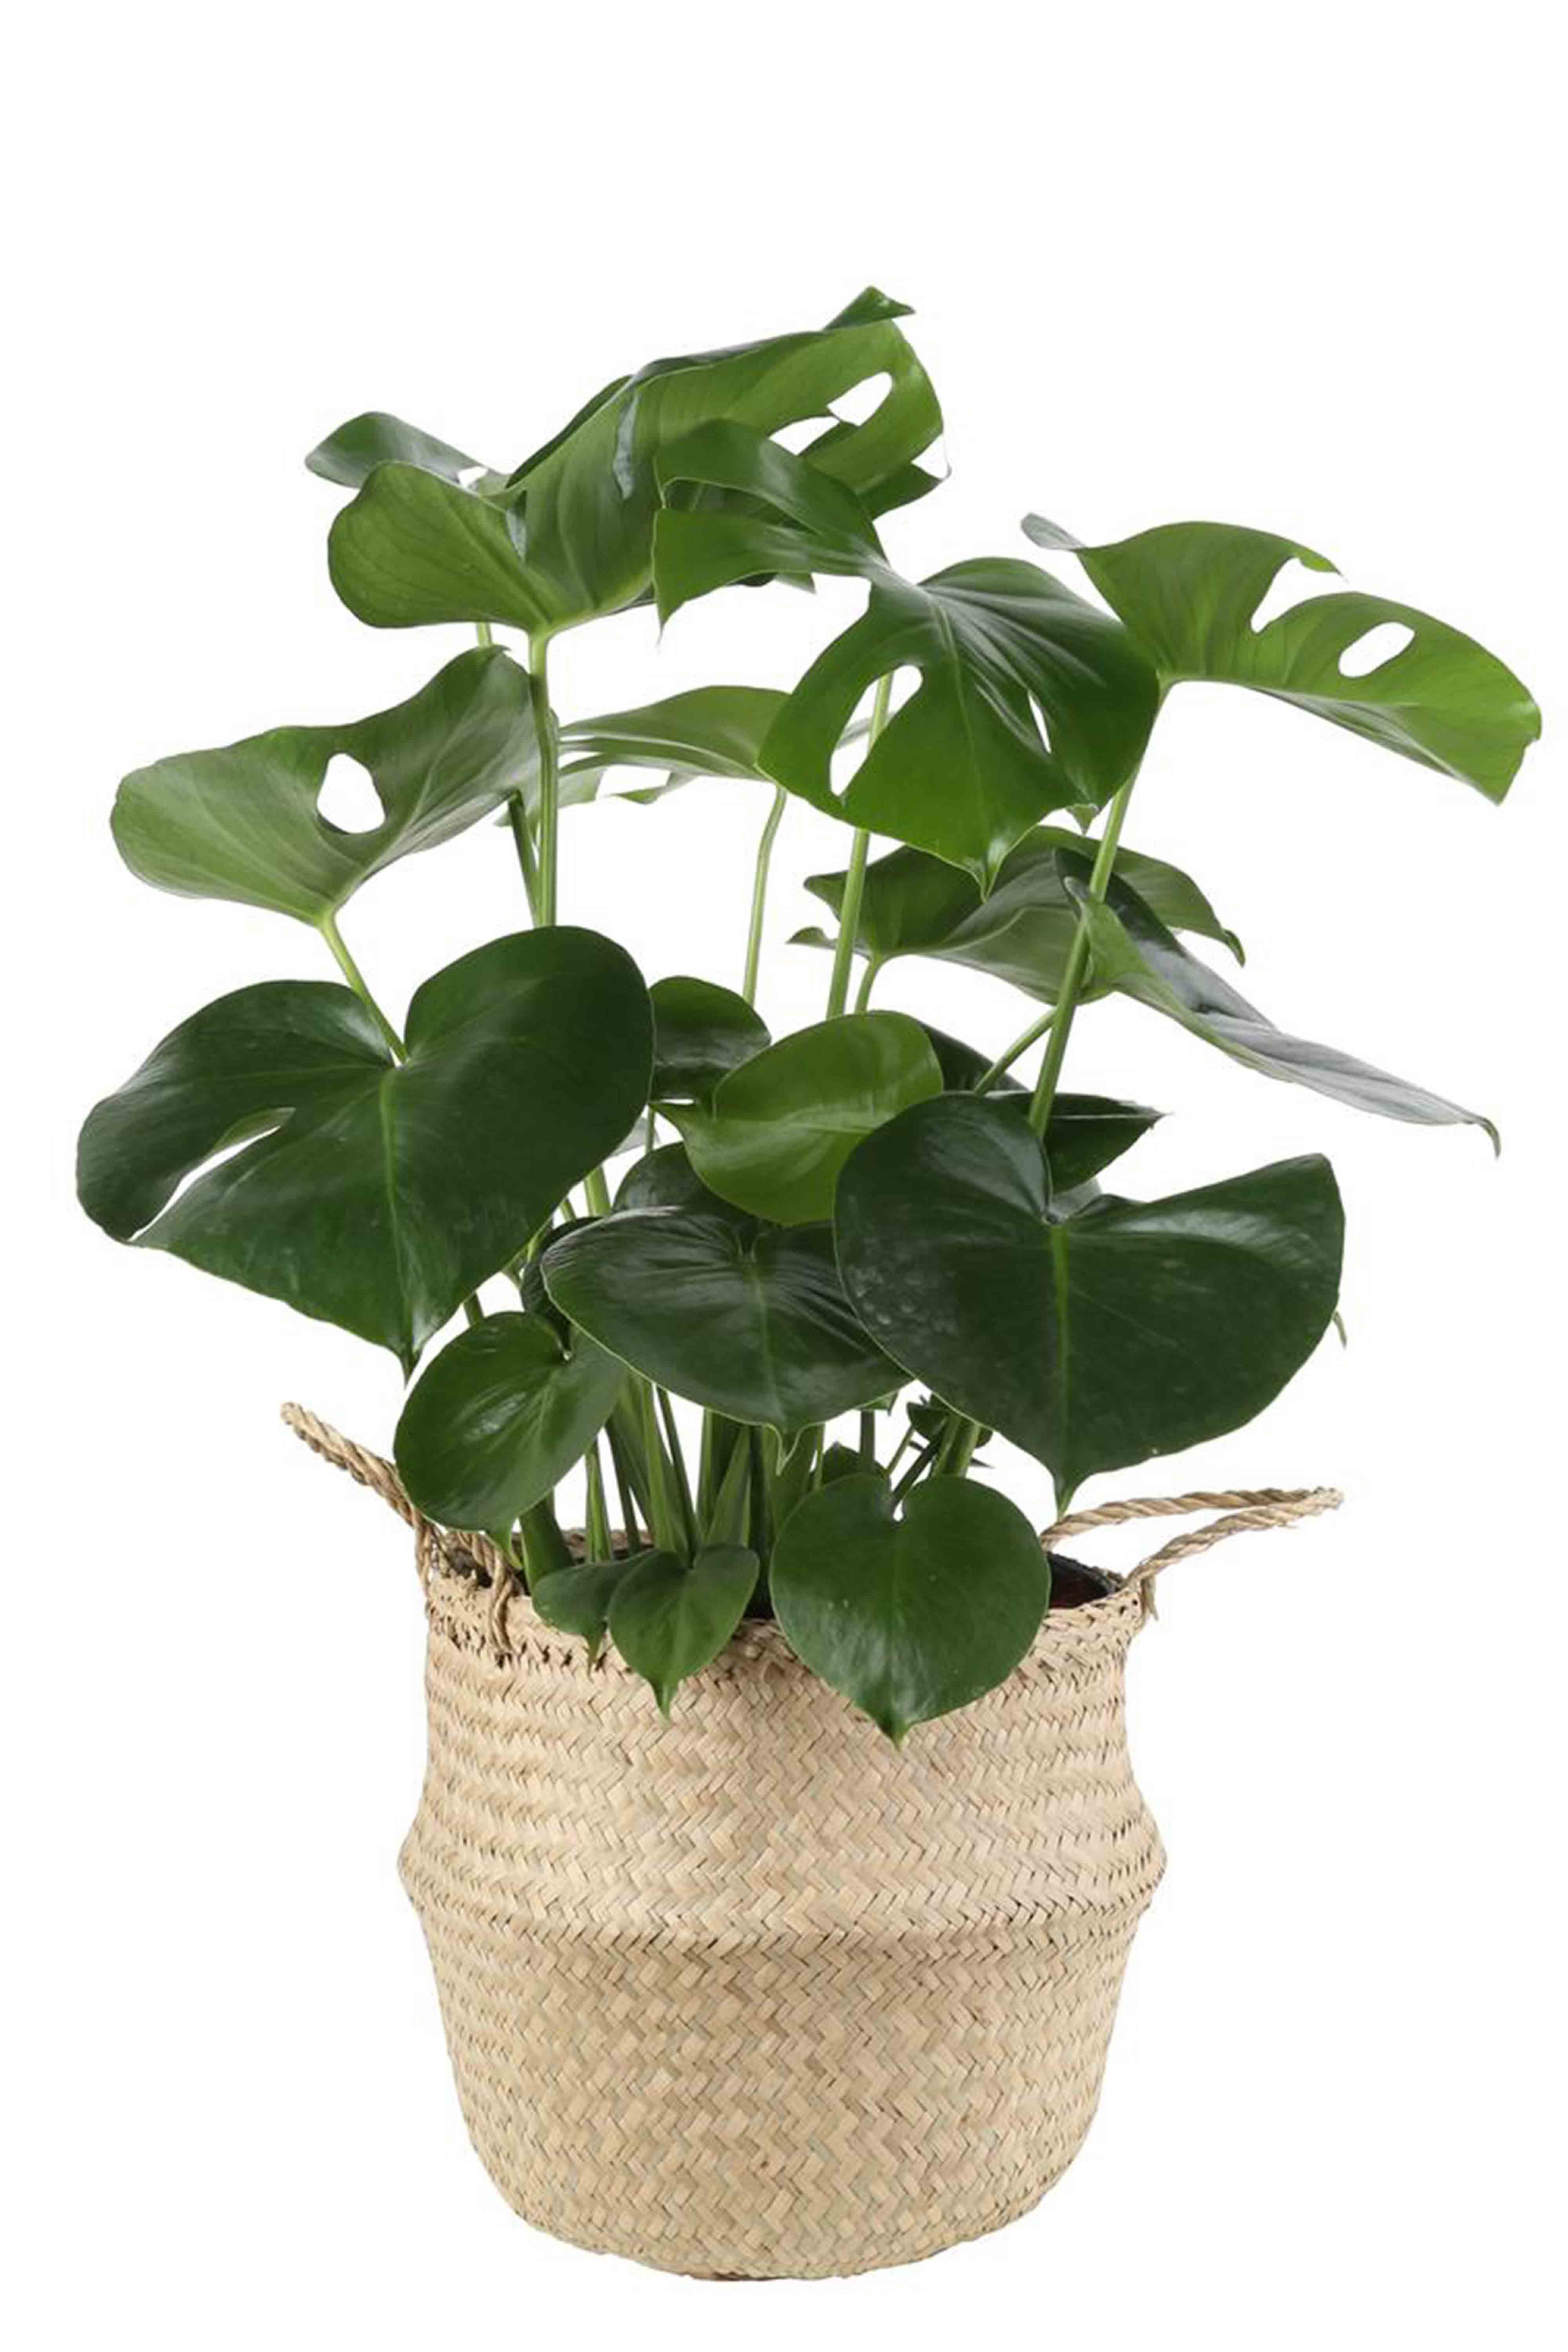 25 Best Indoor Plants For Apartments Low Maintenance City Dwellers